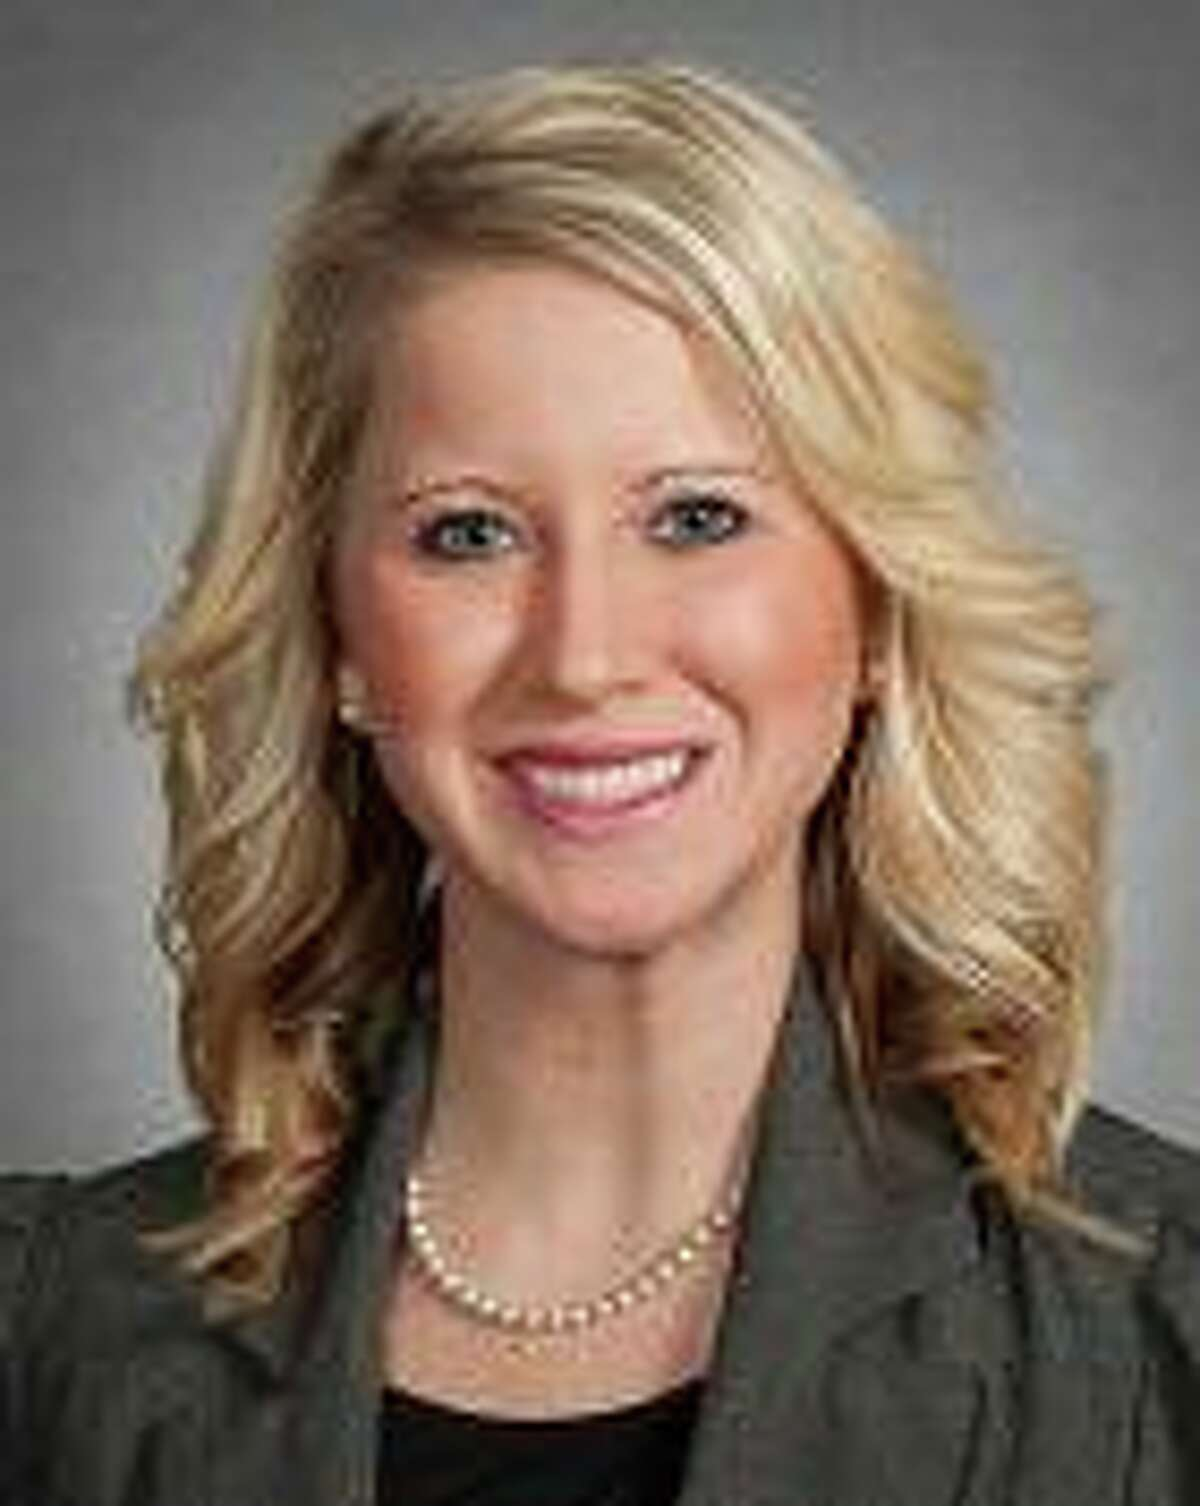 Juliette Nessmith has been named vice president of the Fort Bend Chamber of Commerce.